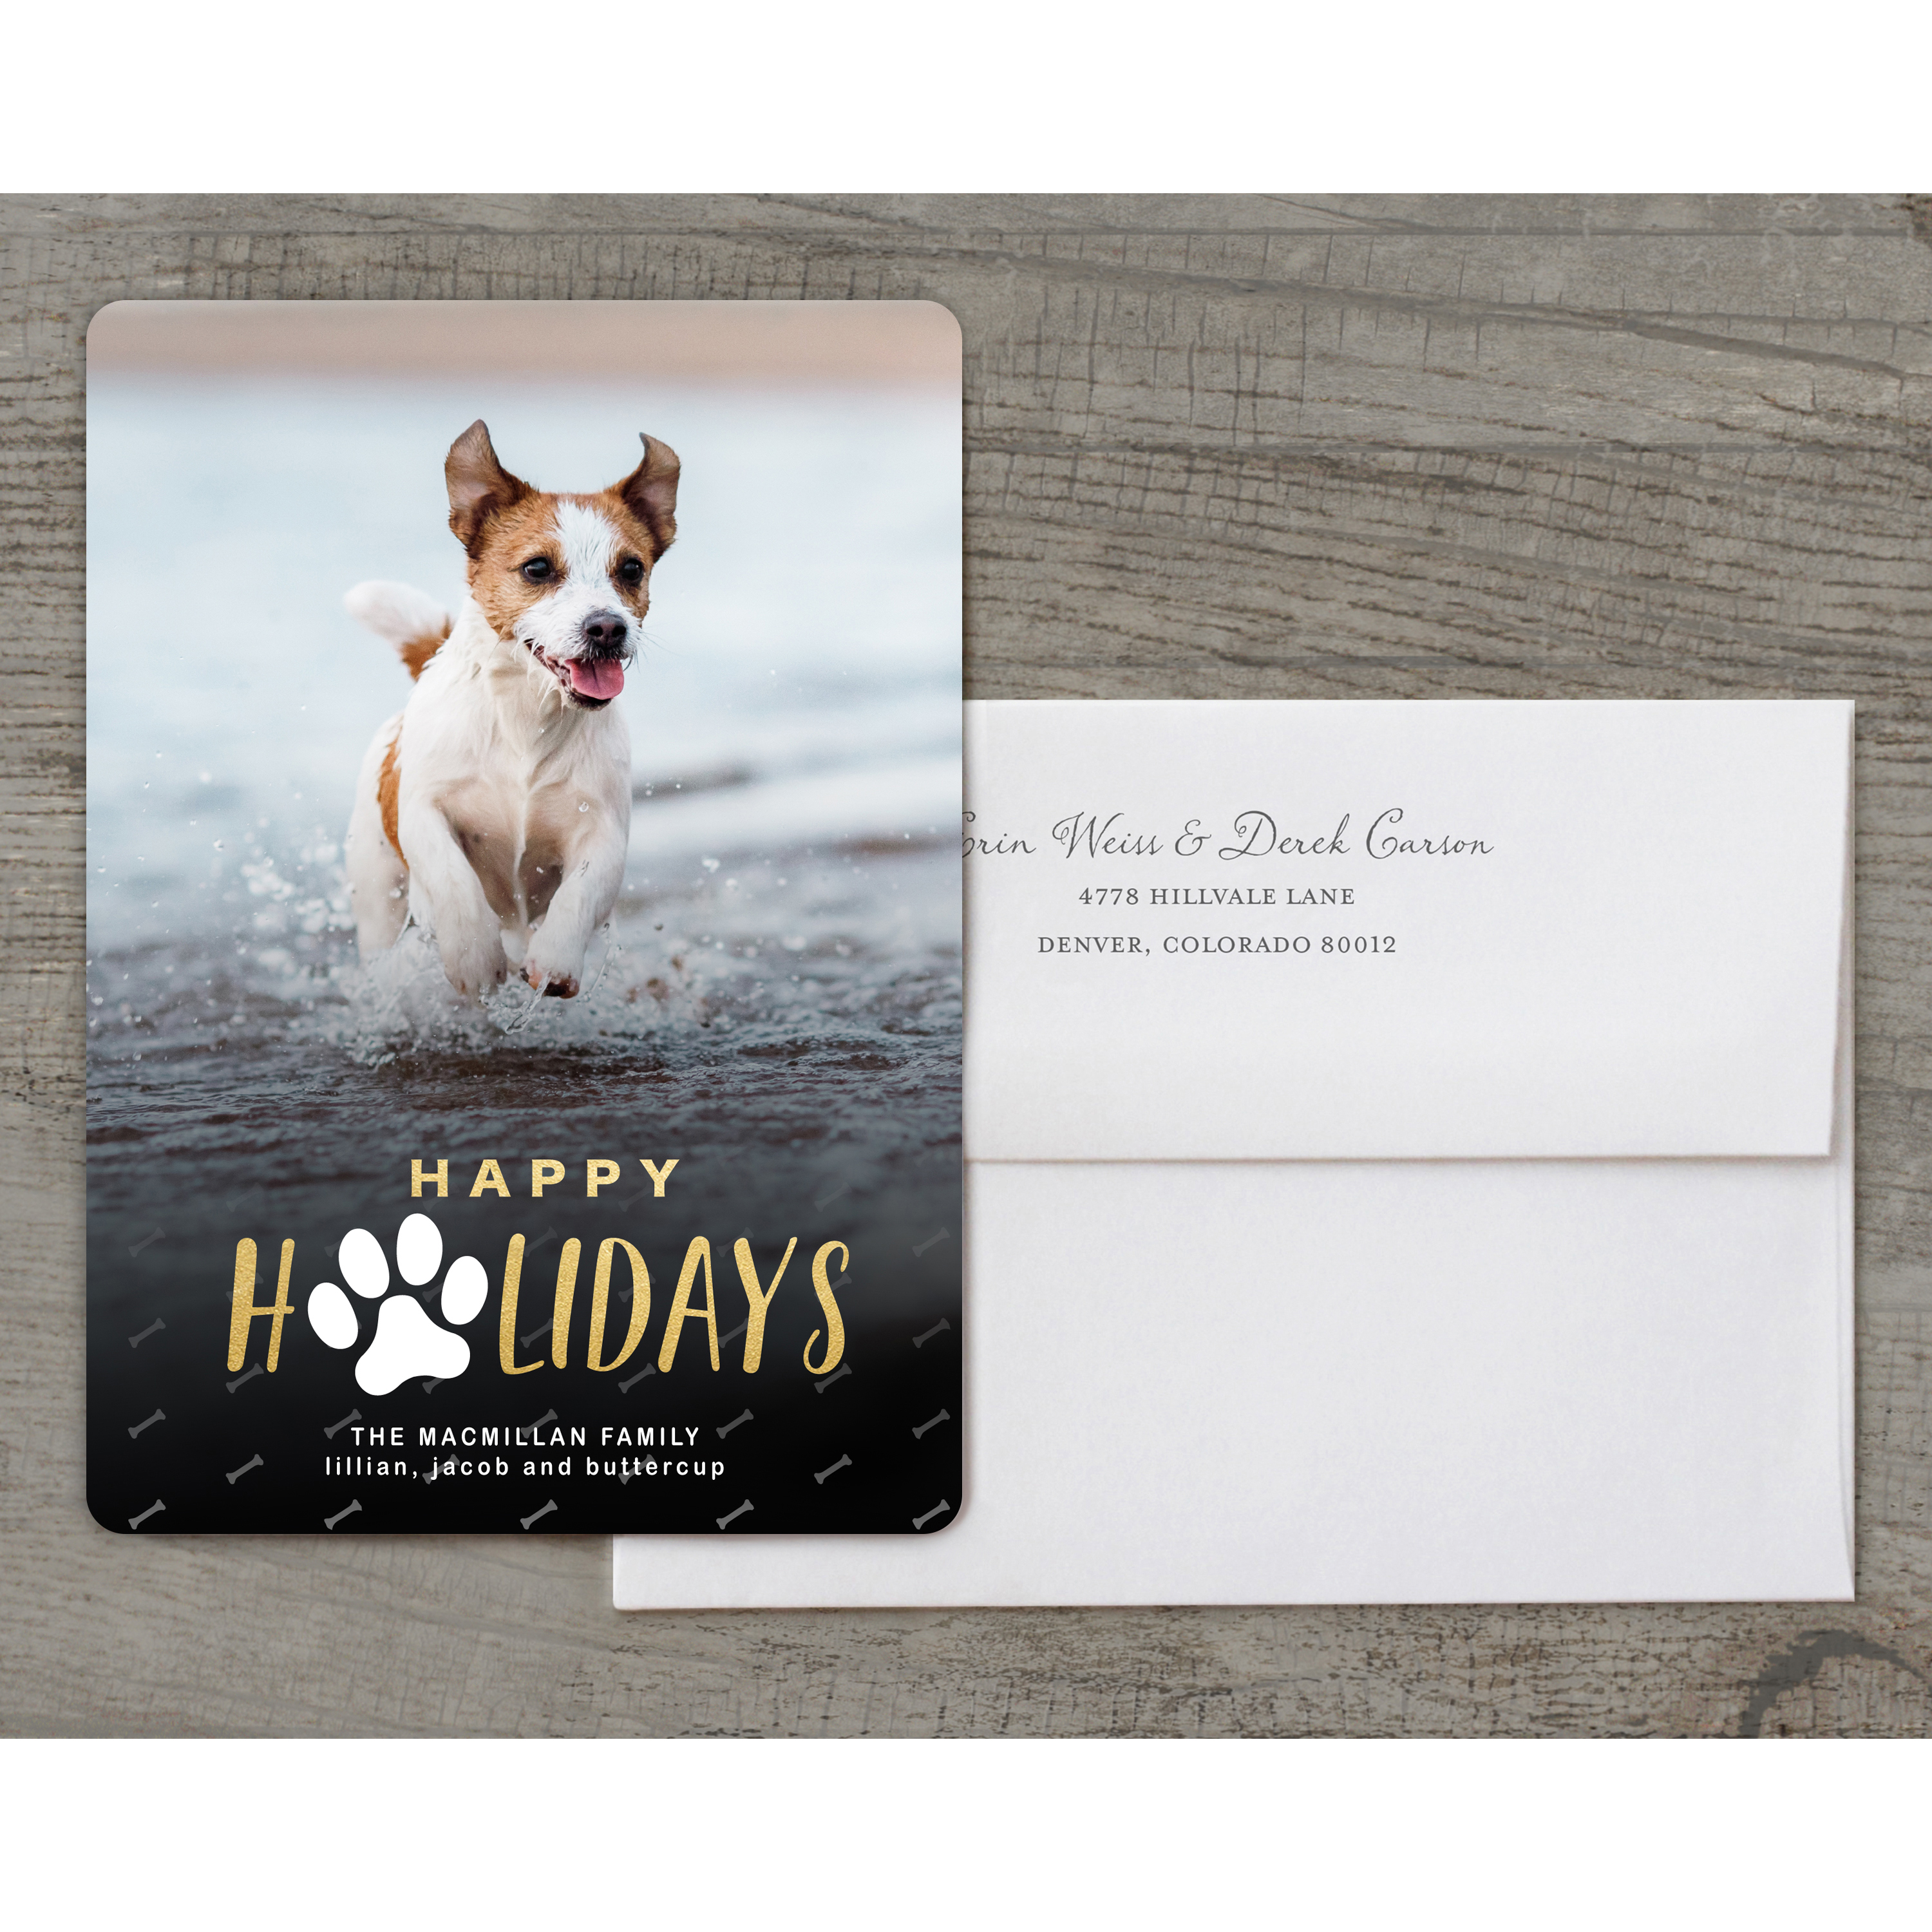 For the Love of Pets - Deluxe 5x7 Personalized Holiday Pet Holiday Card